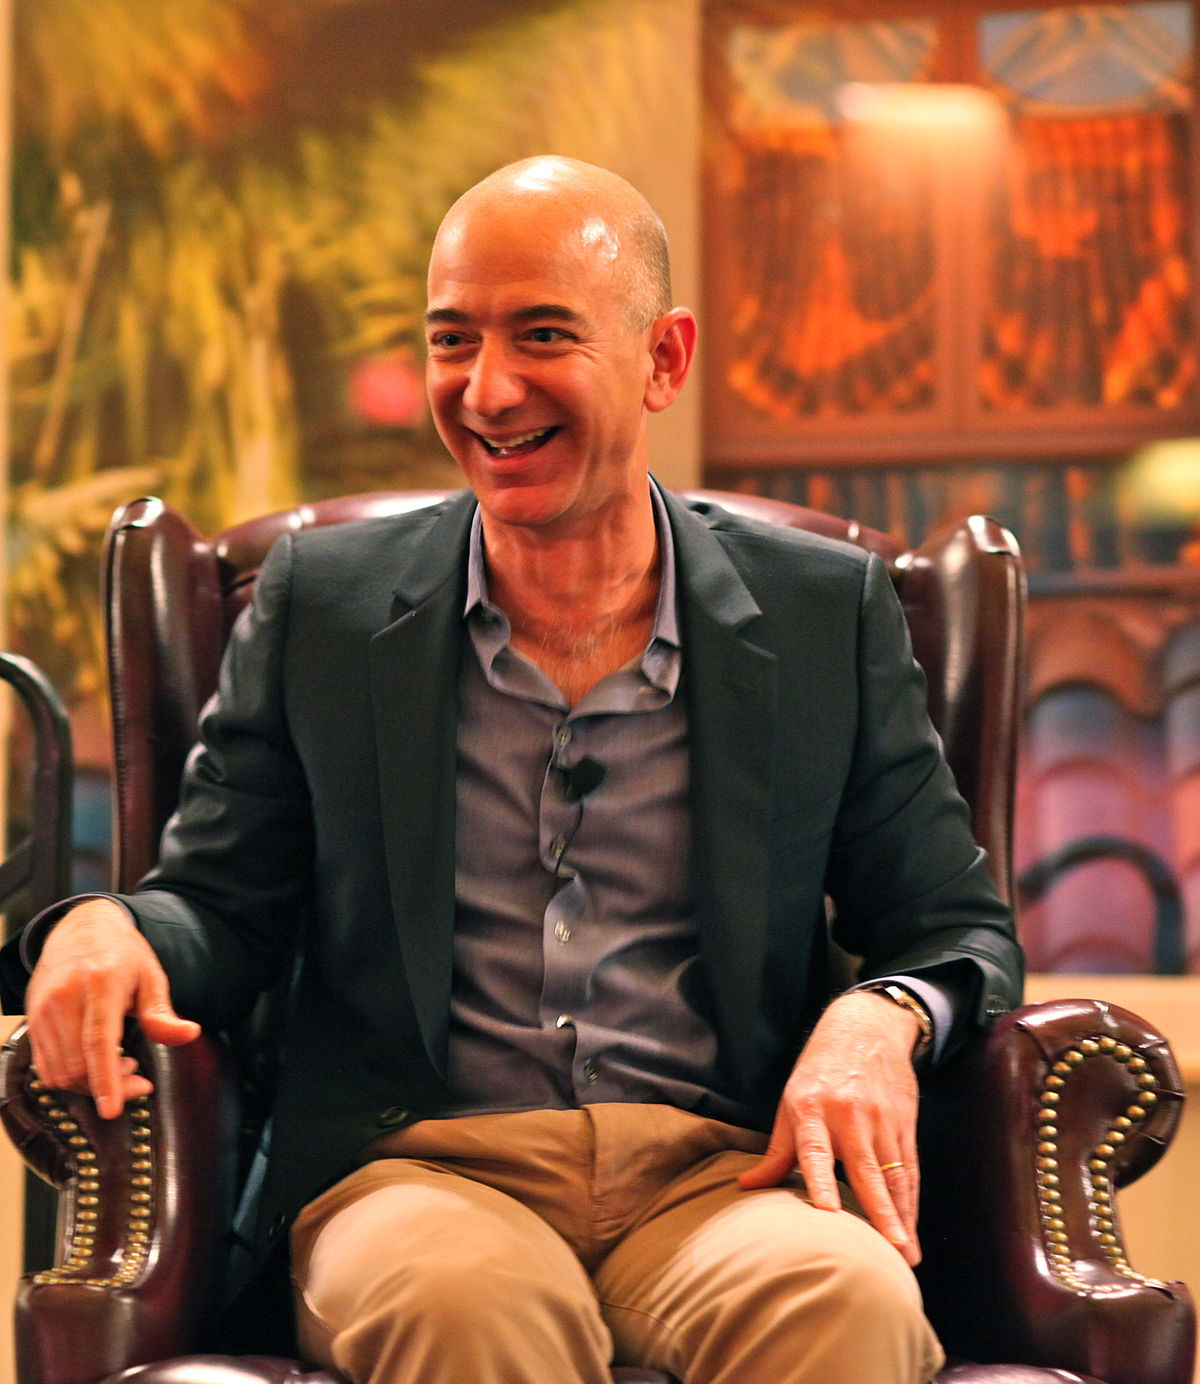 jeff bezos - photo #20